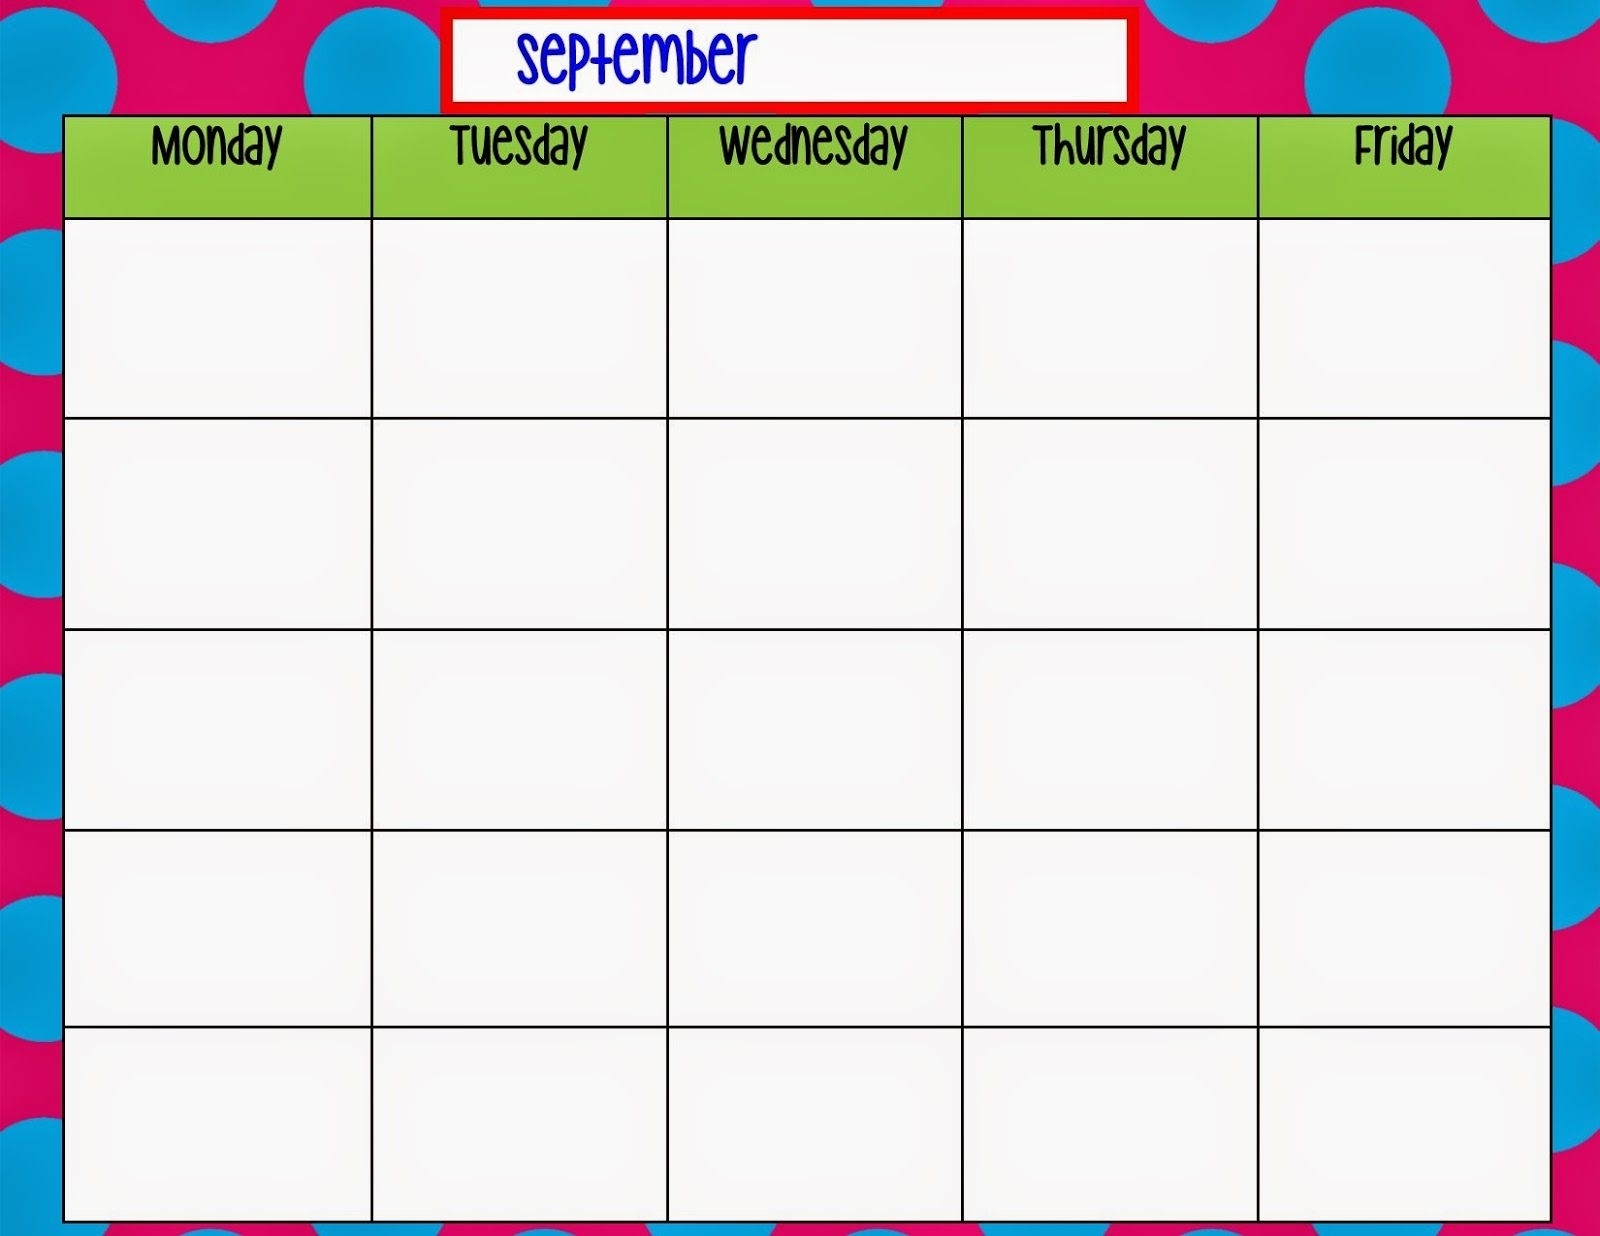 Monday Through Friday Calendar Template | Preschool | Printable intended for Blank Monday Through Friday Weekly Calendar Without Download